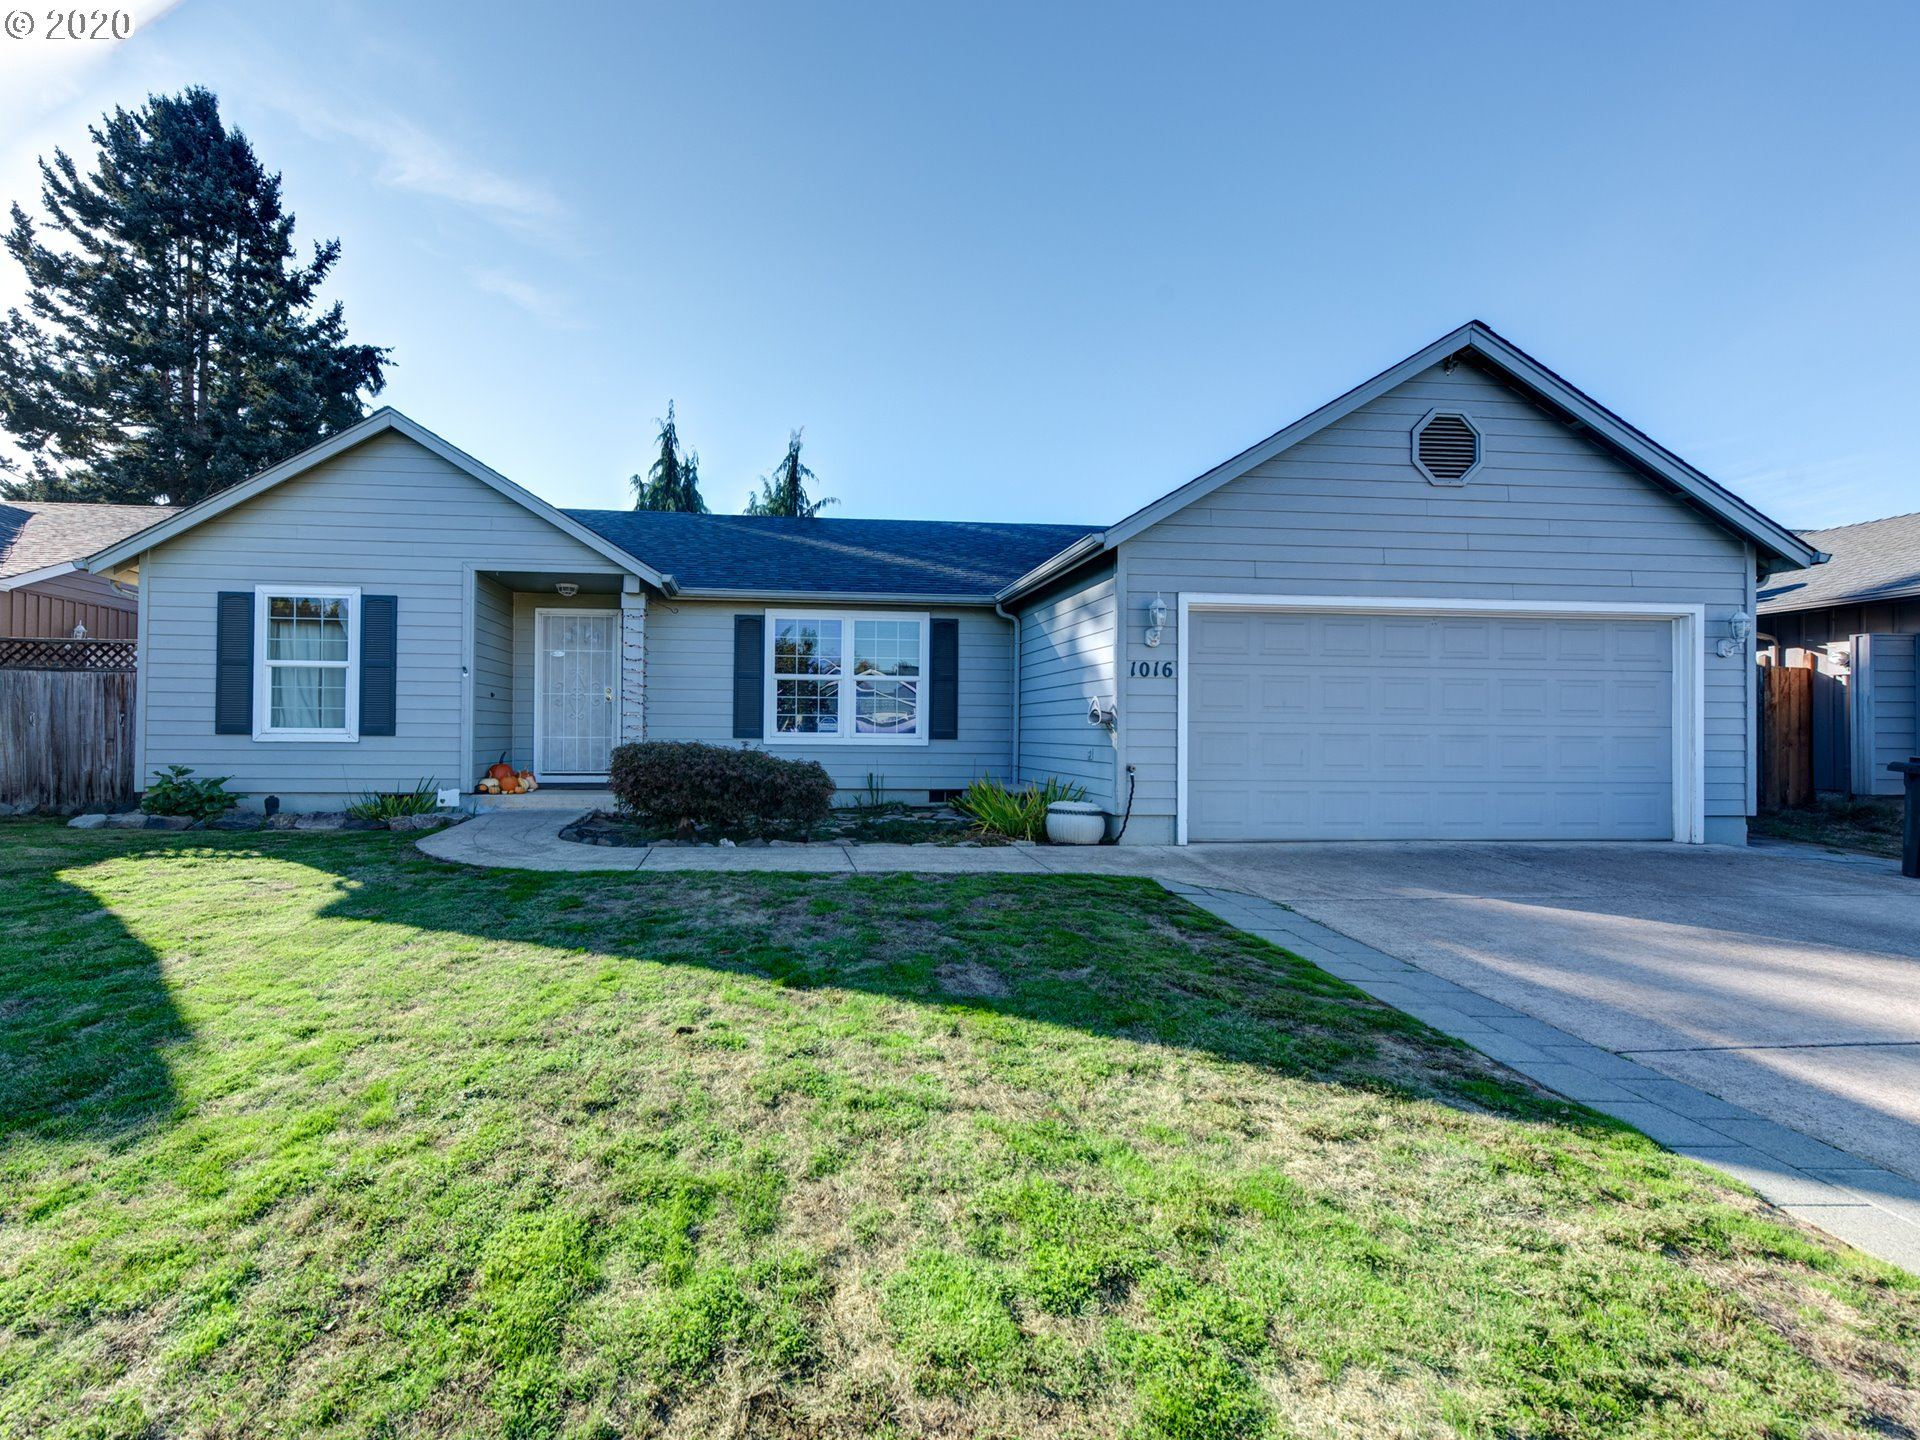 Photo for 1016 ASH GROVE LOOP, Creswell, OR 97426 (MLS # 20353452)